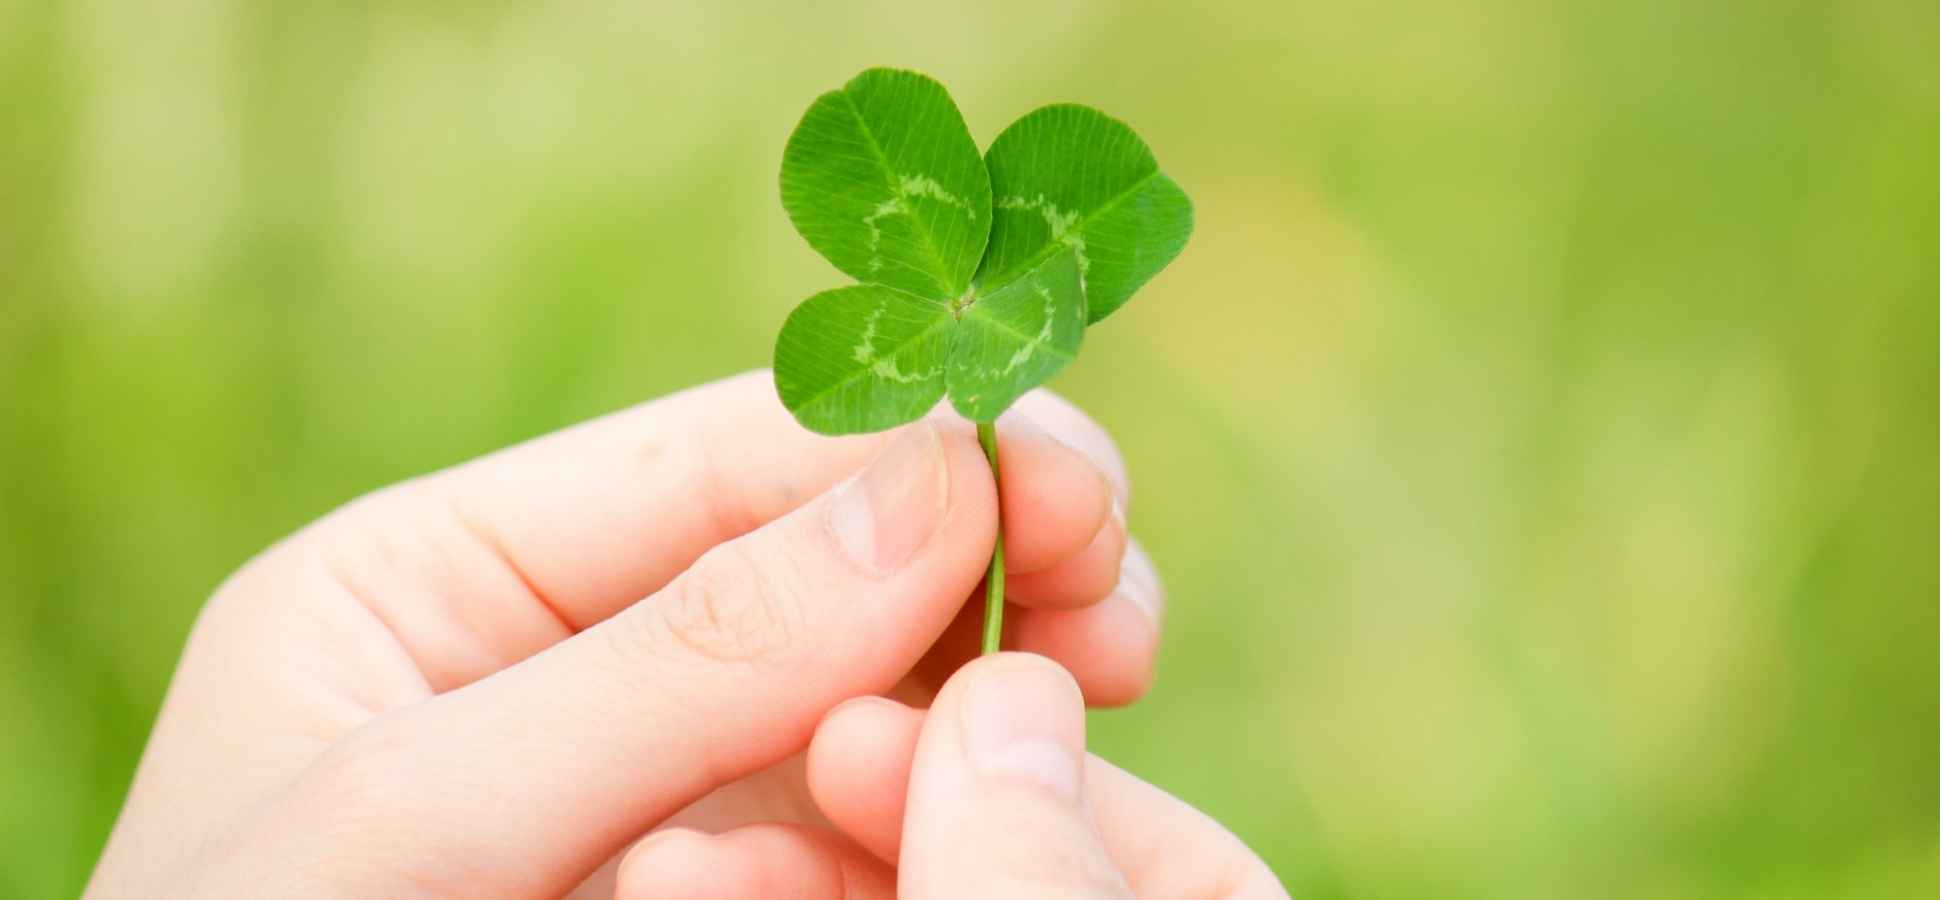 To Create Your Own Luck, Do Any 1 of These 5 Things